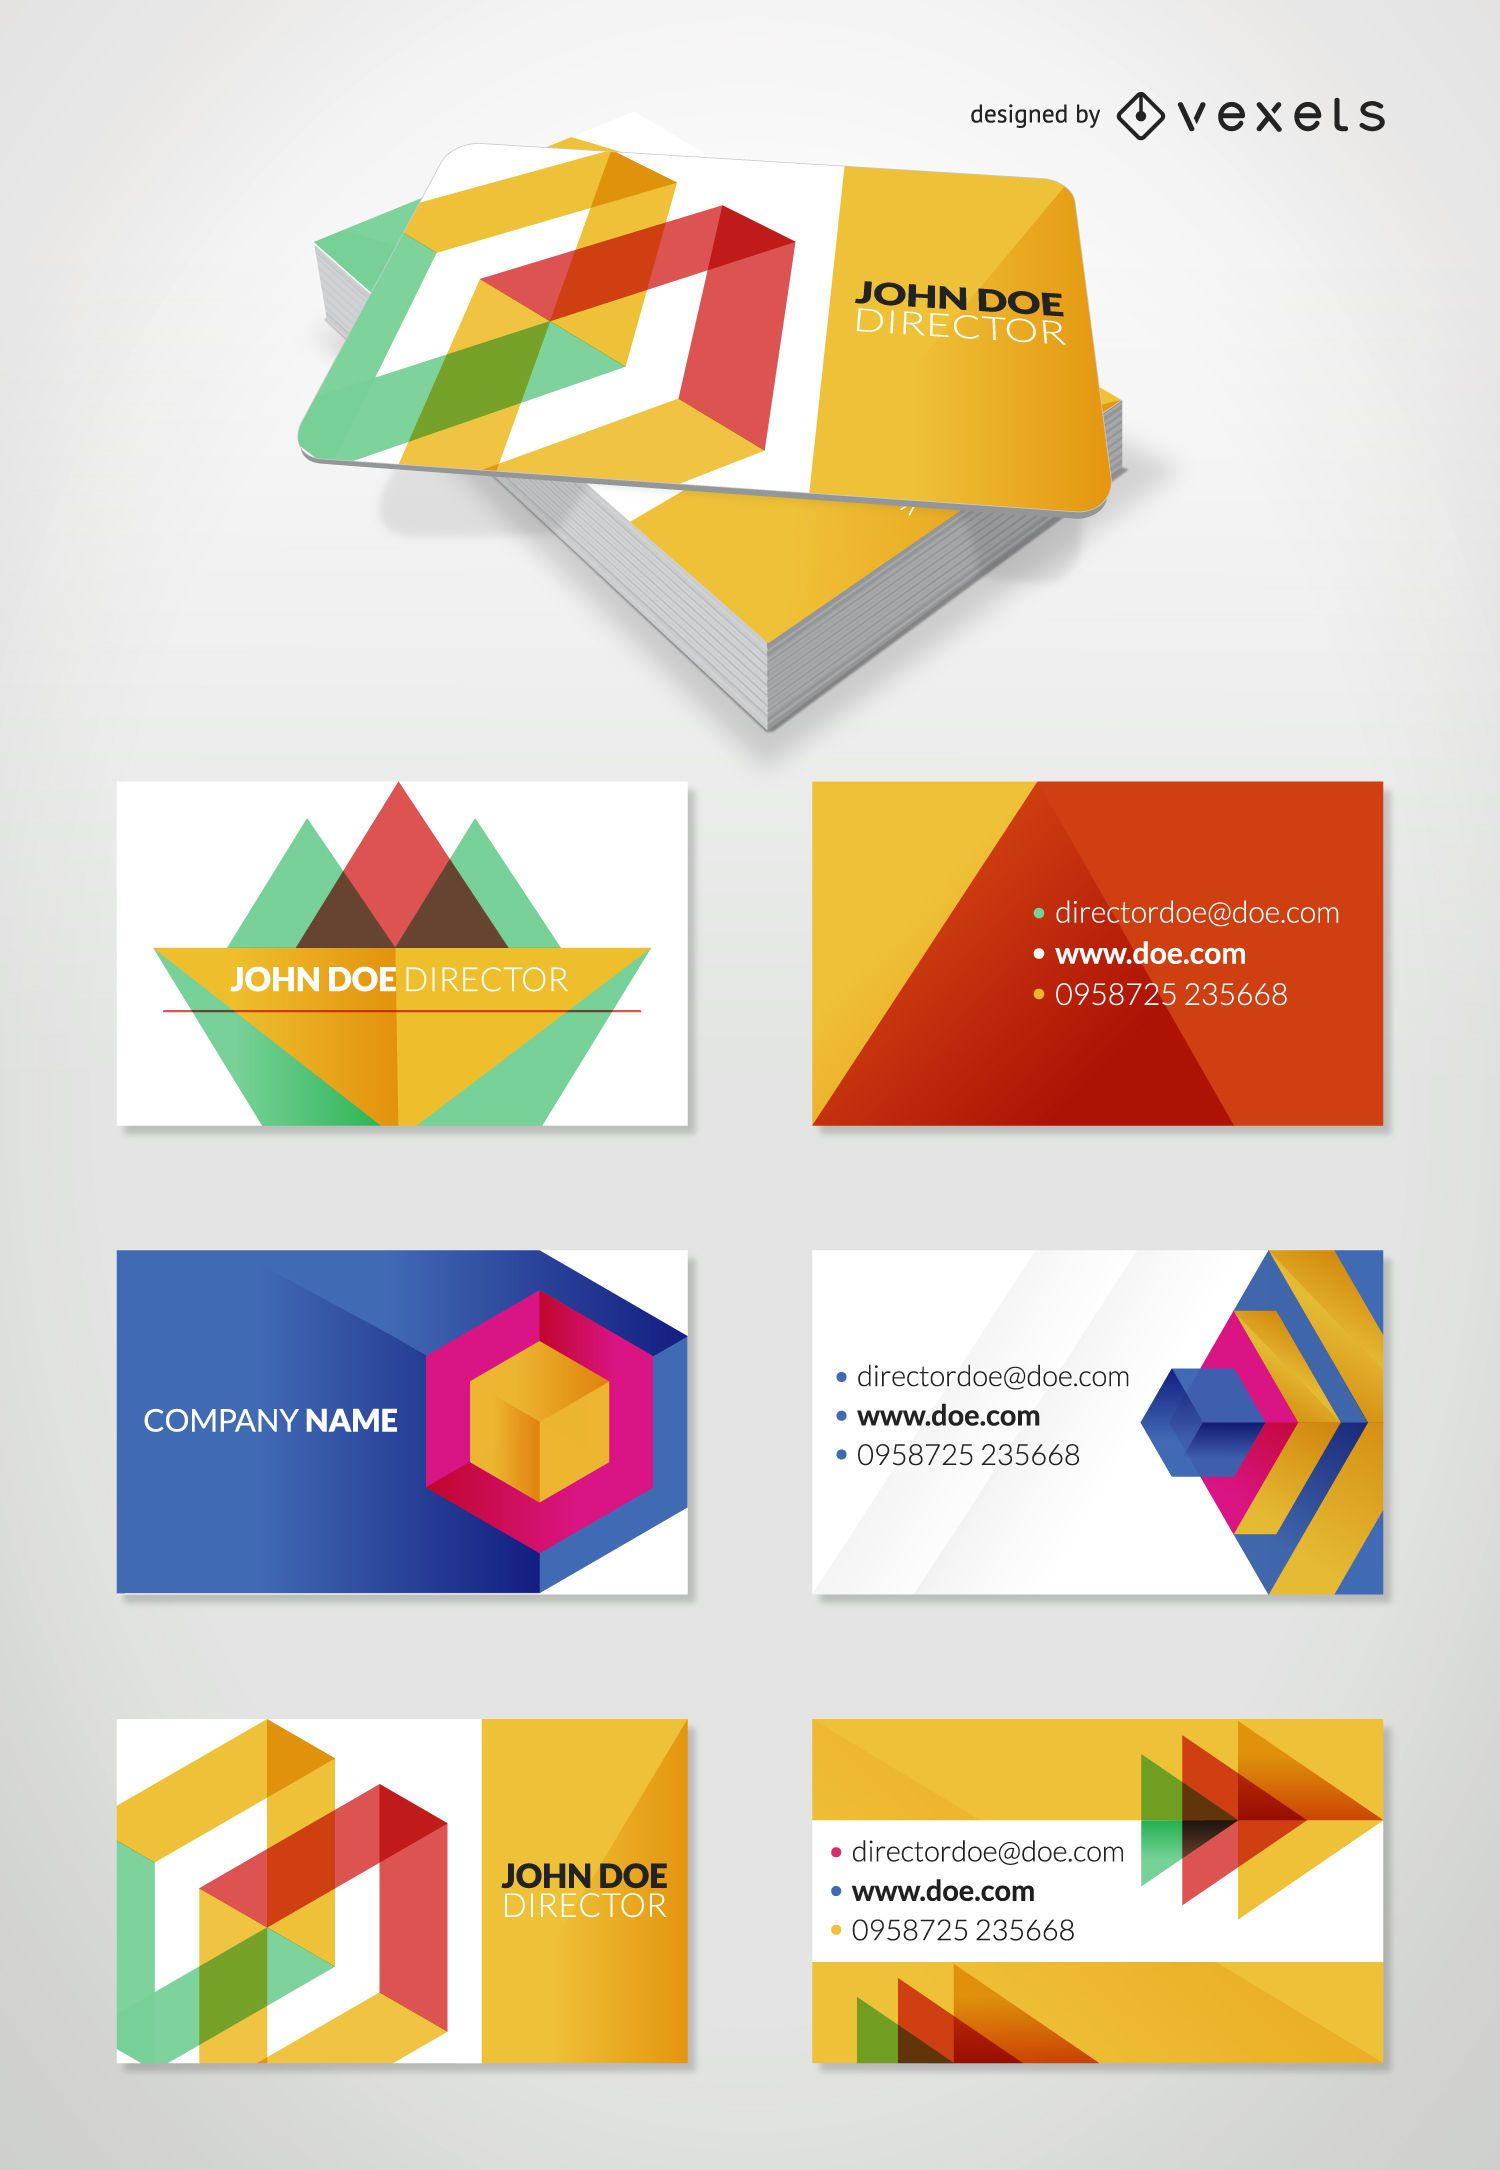 ups 500 business cards for 9 99 best business 2017